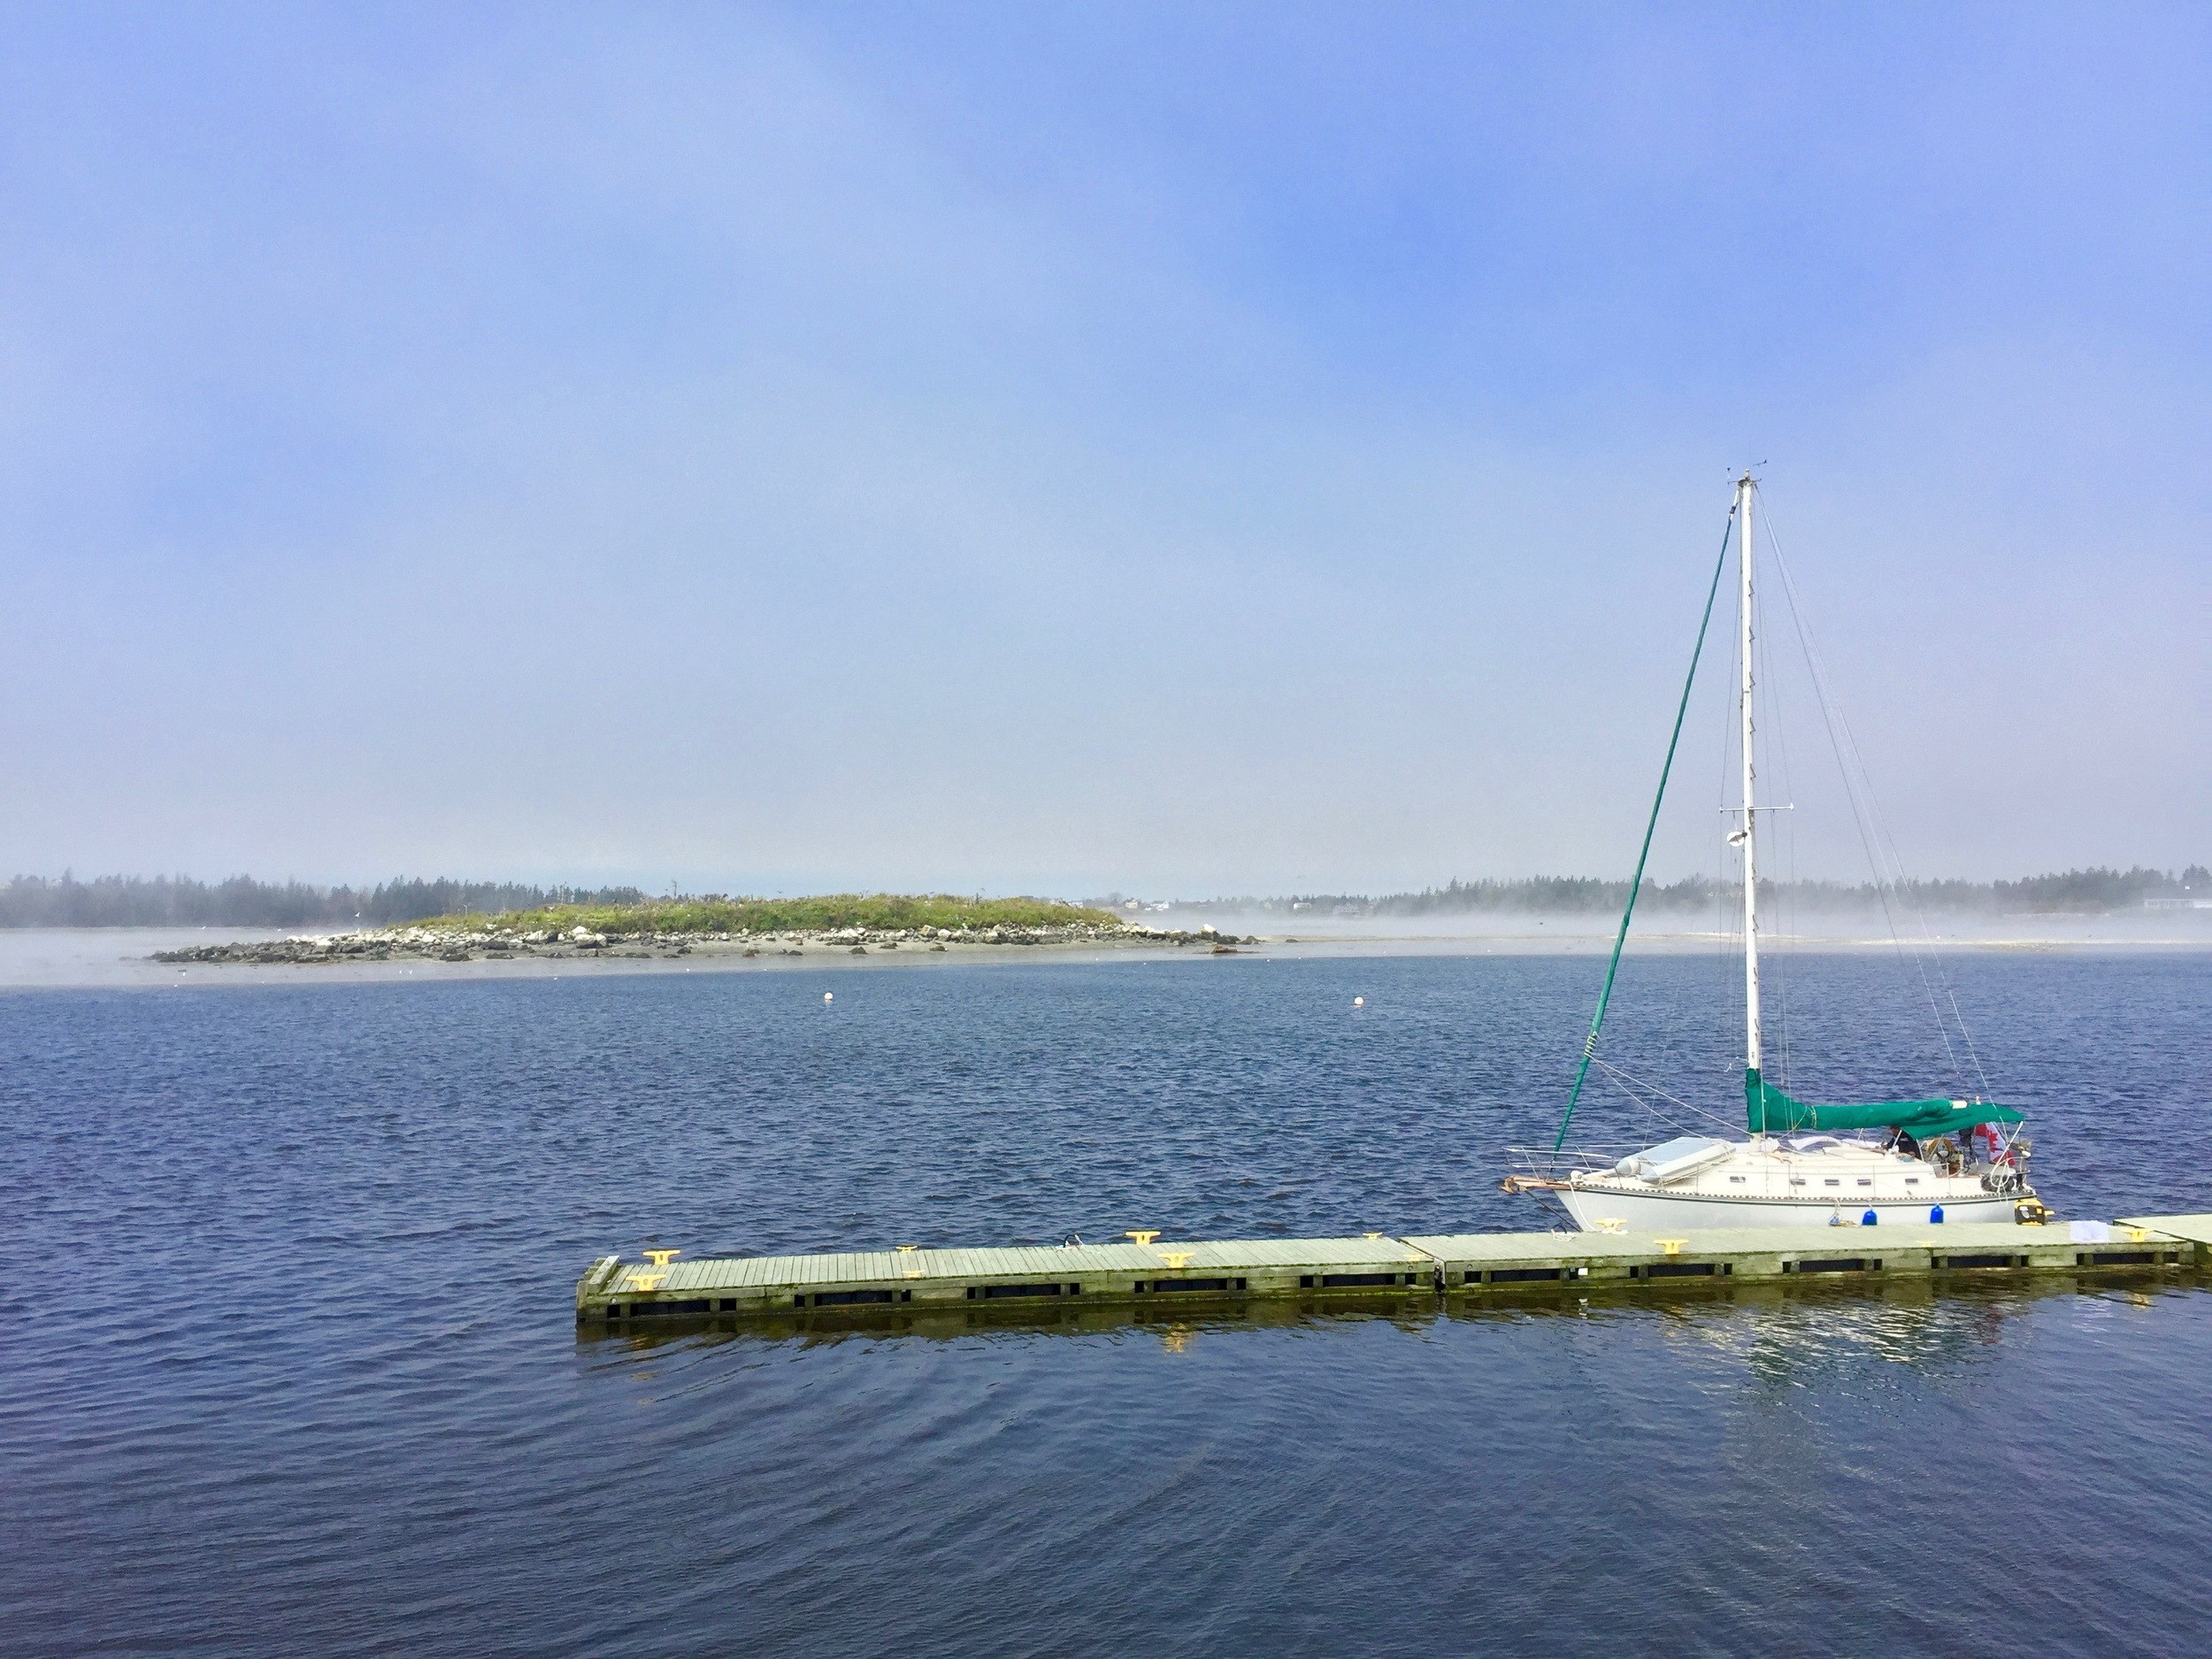 One more quick stop for some scenes from the Yarmouth Harbour, mist and fog on the water.